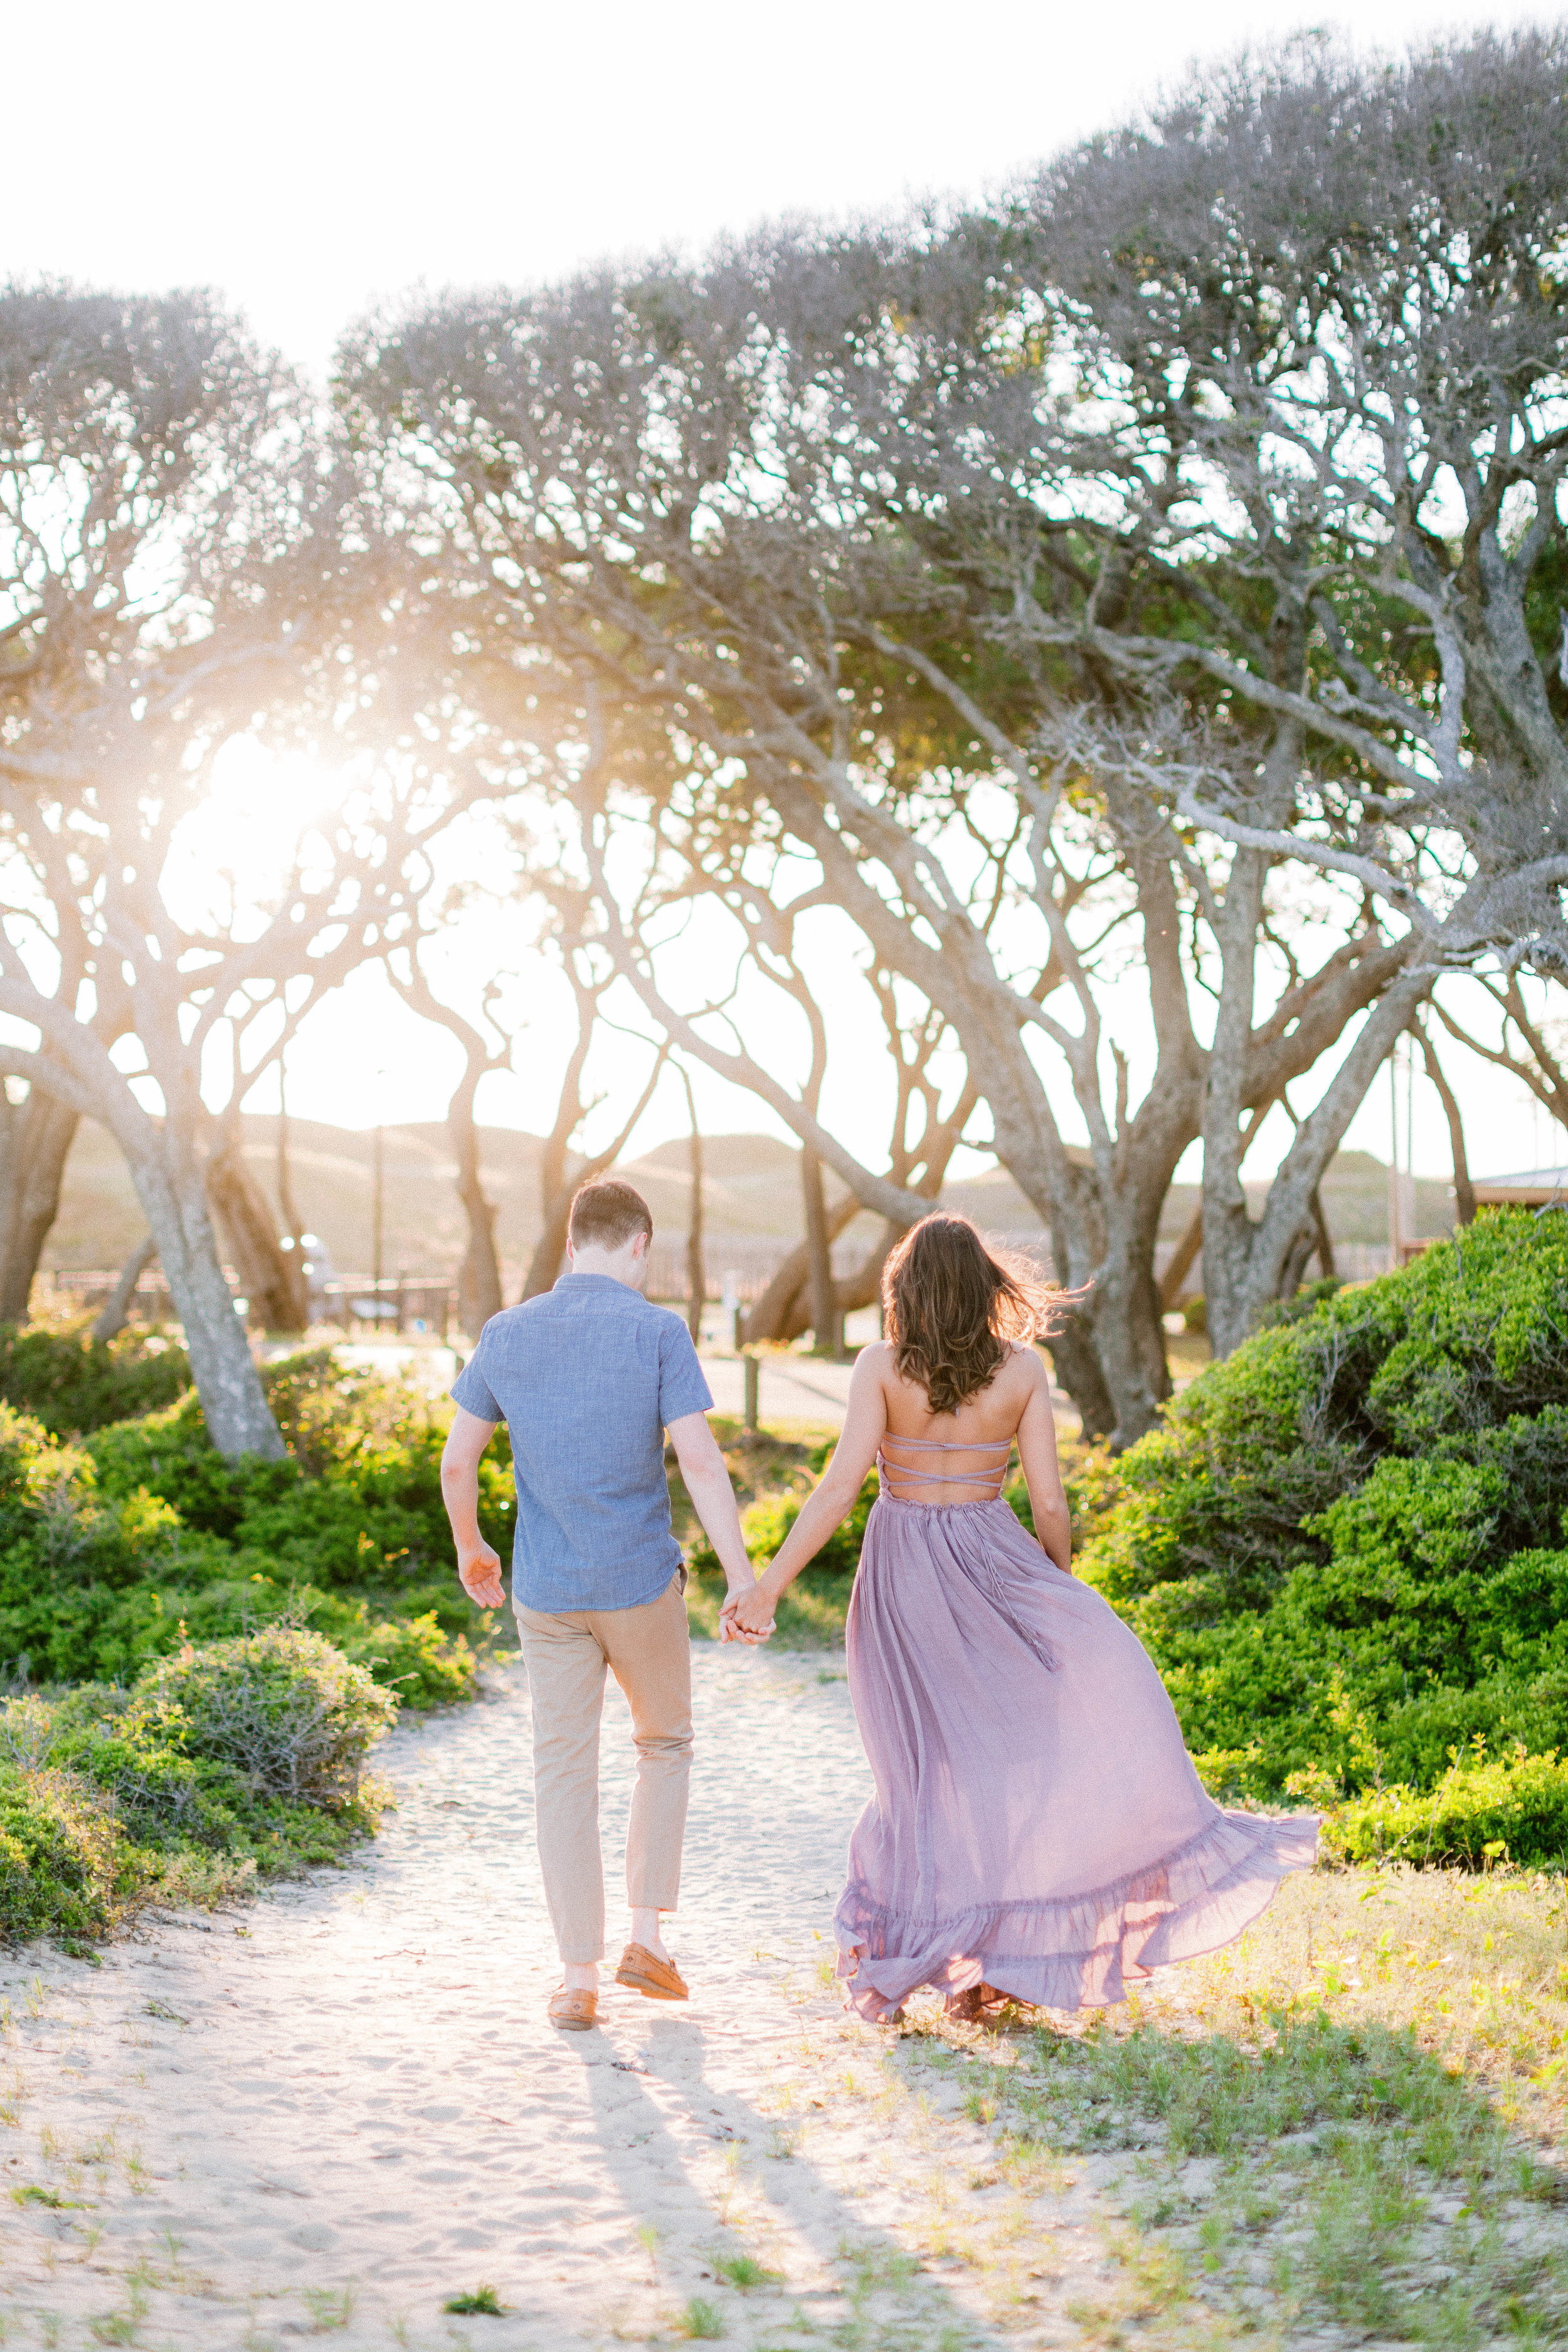 Couples Anniversary Photography in Kailua - Oahu Hawaii Engagement Photographer